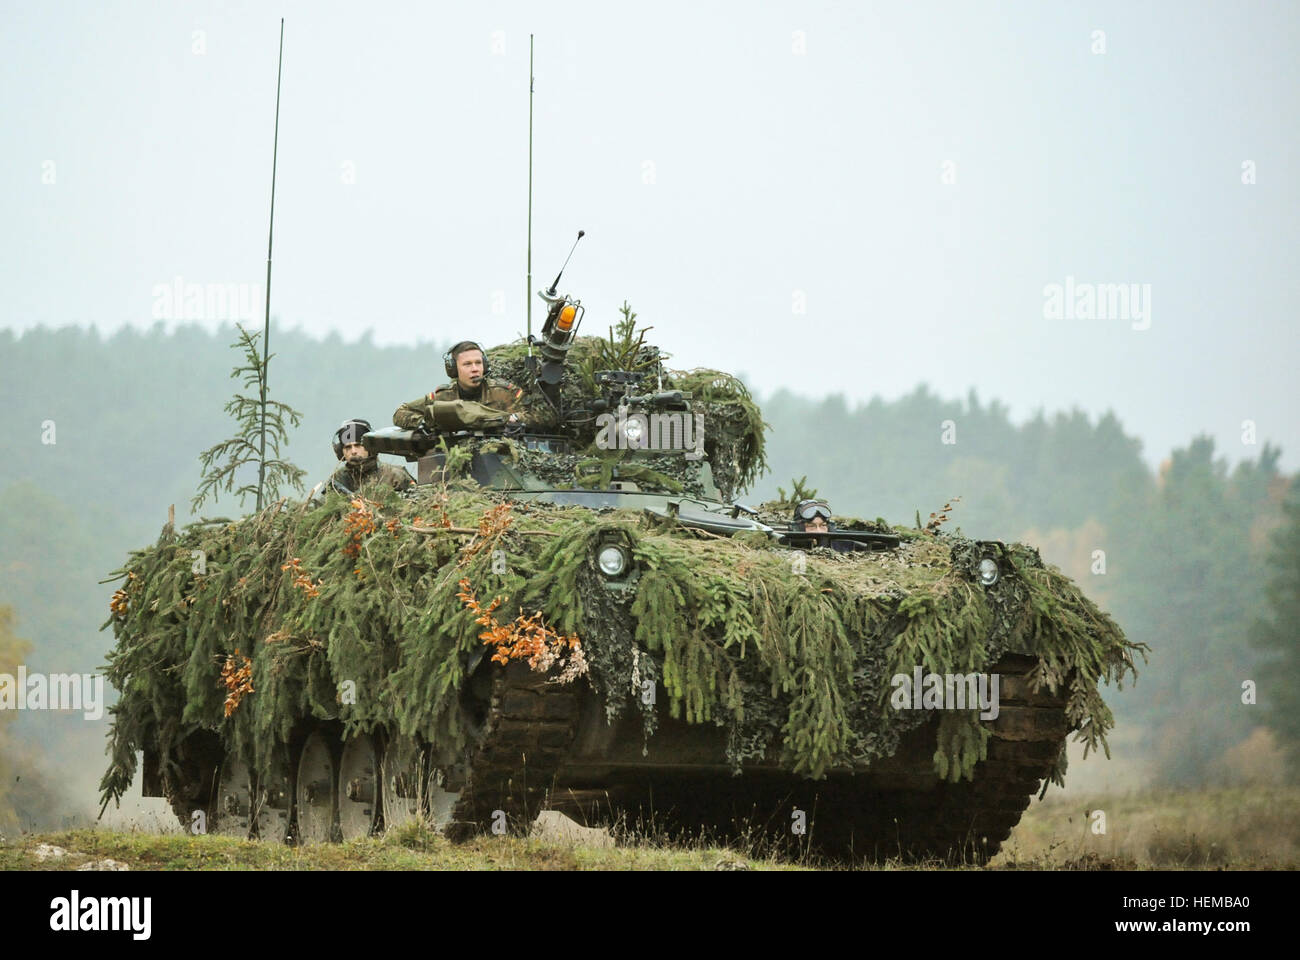 German Army Soldiers in a Marder infantry fighting vehicle scan the battlefield during Saber Junction 2012 at the - Stock Image